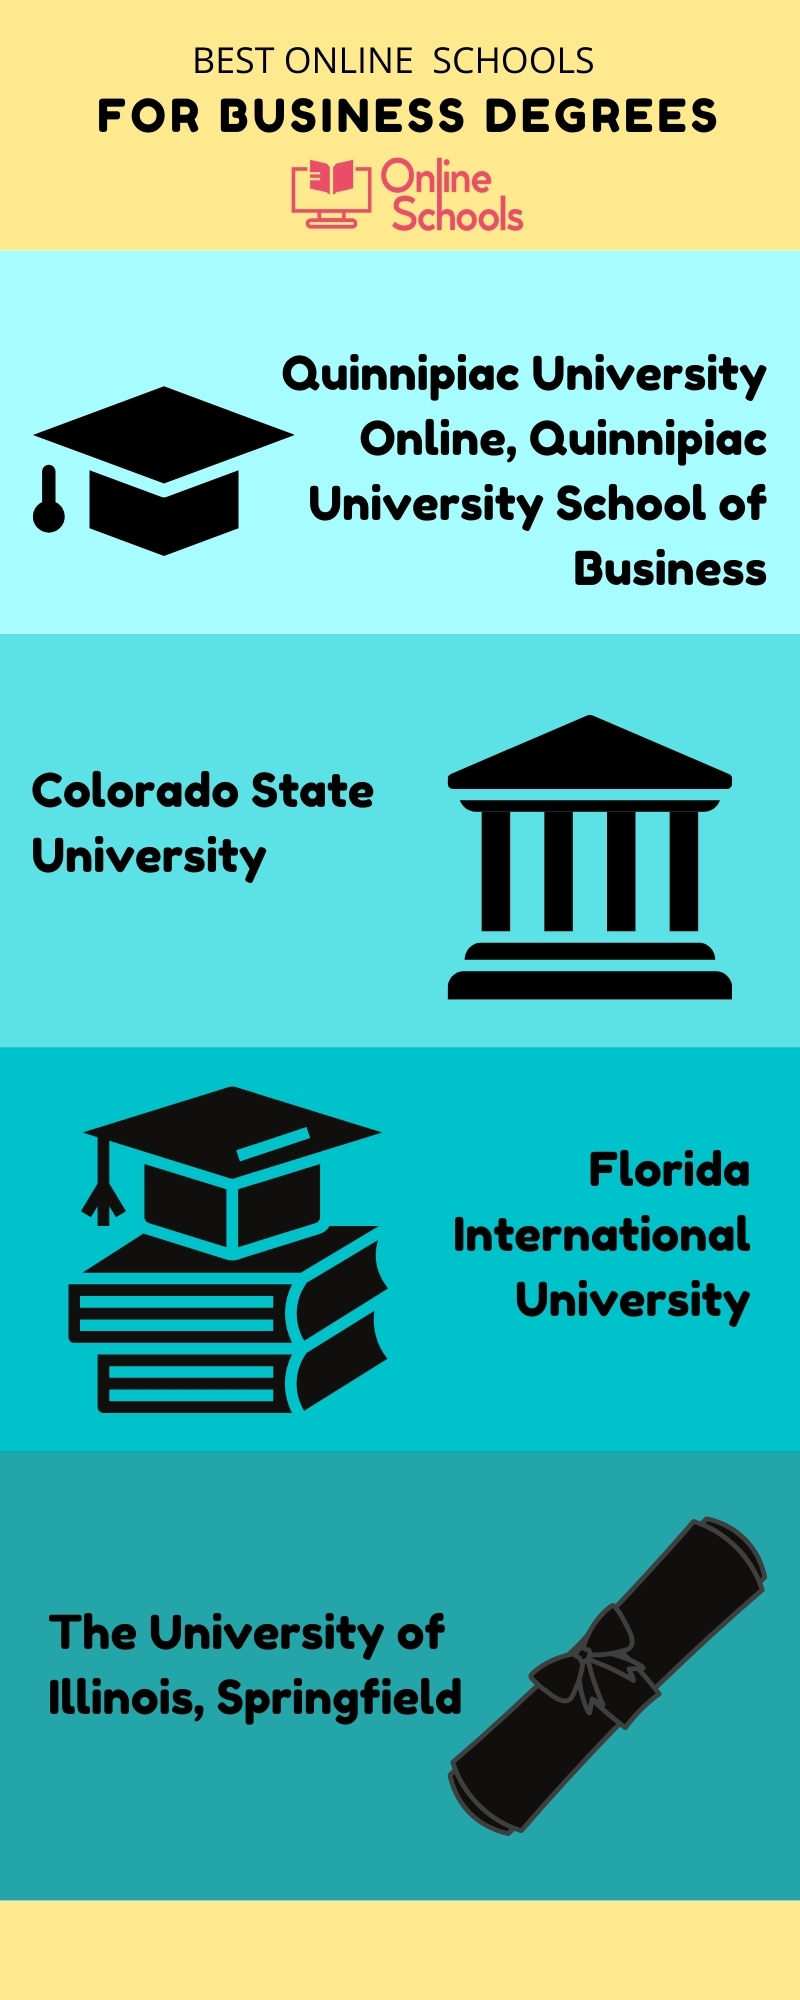 Best online schools for business degrees